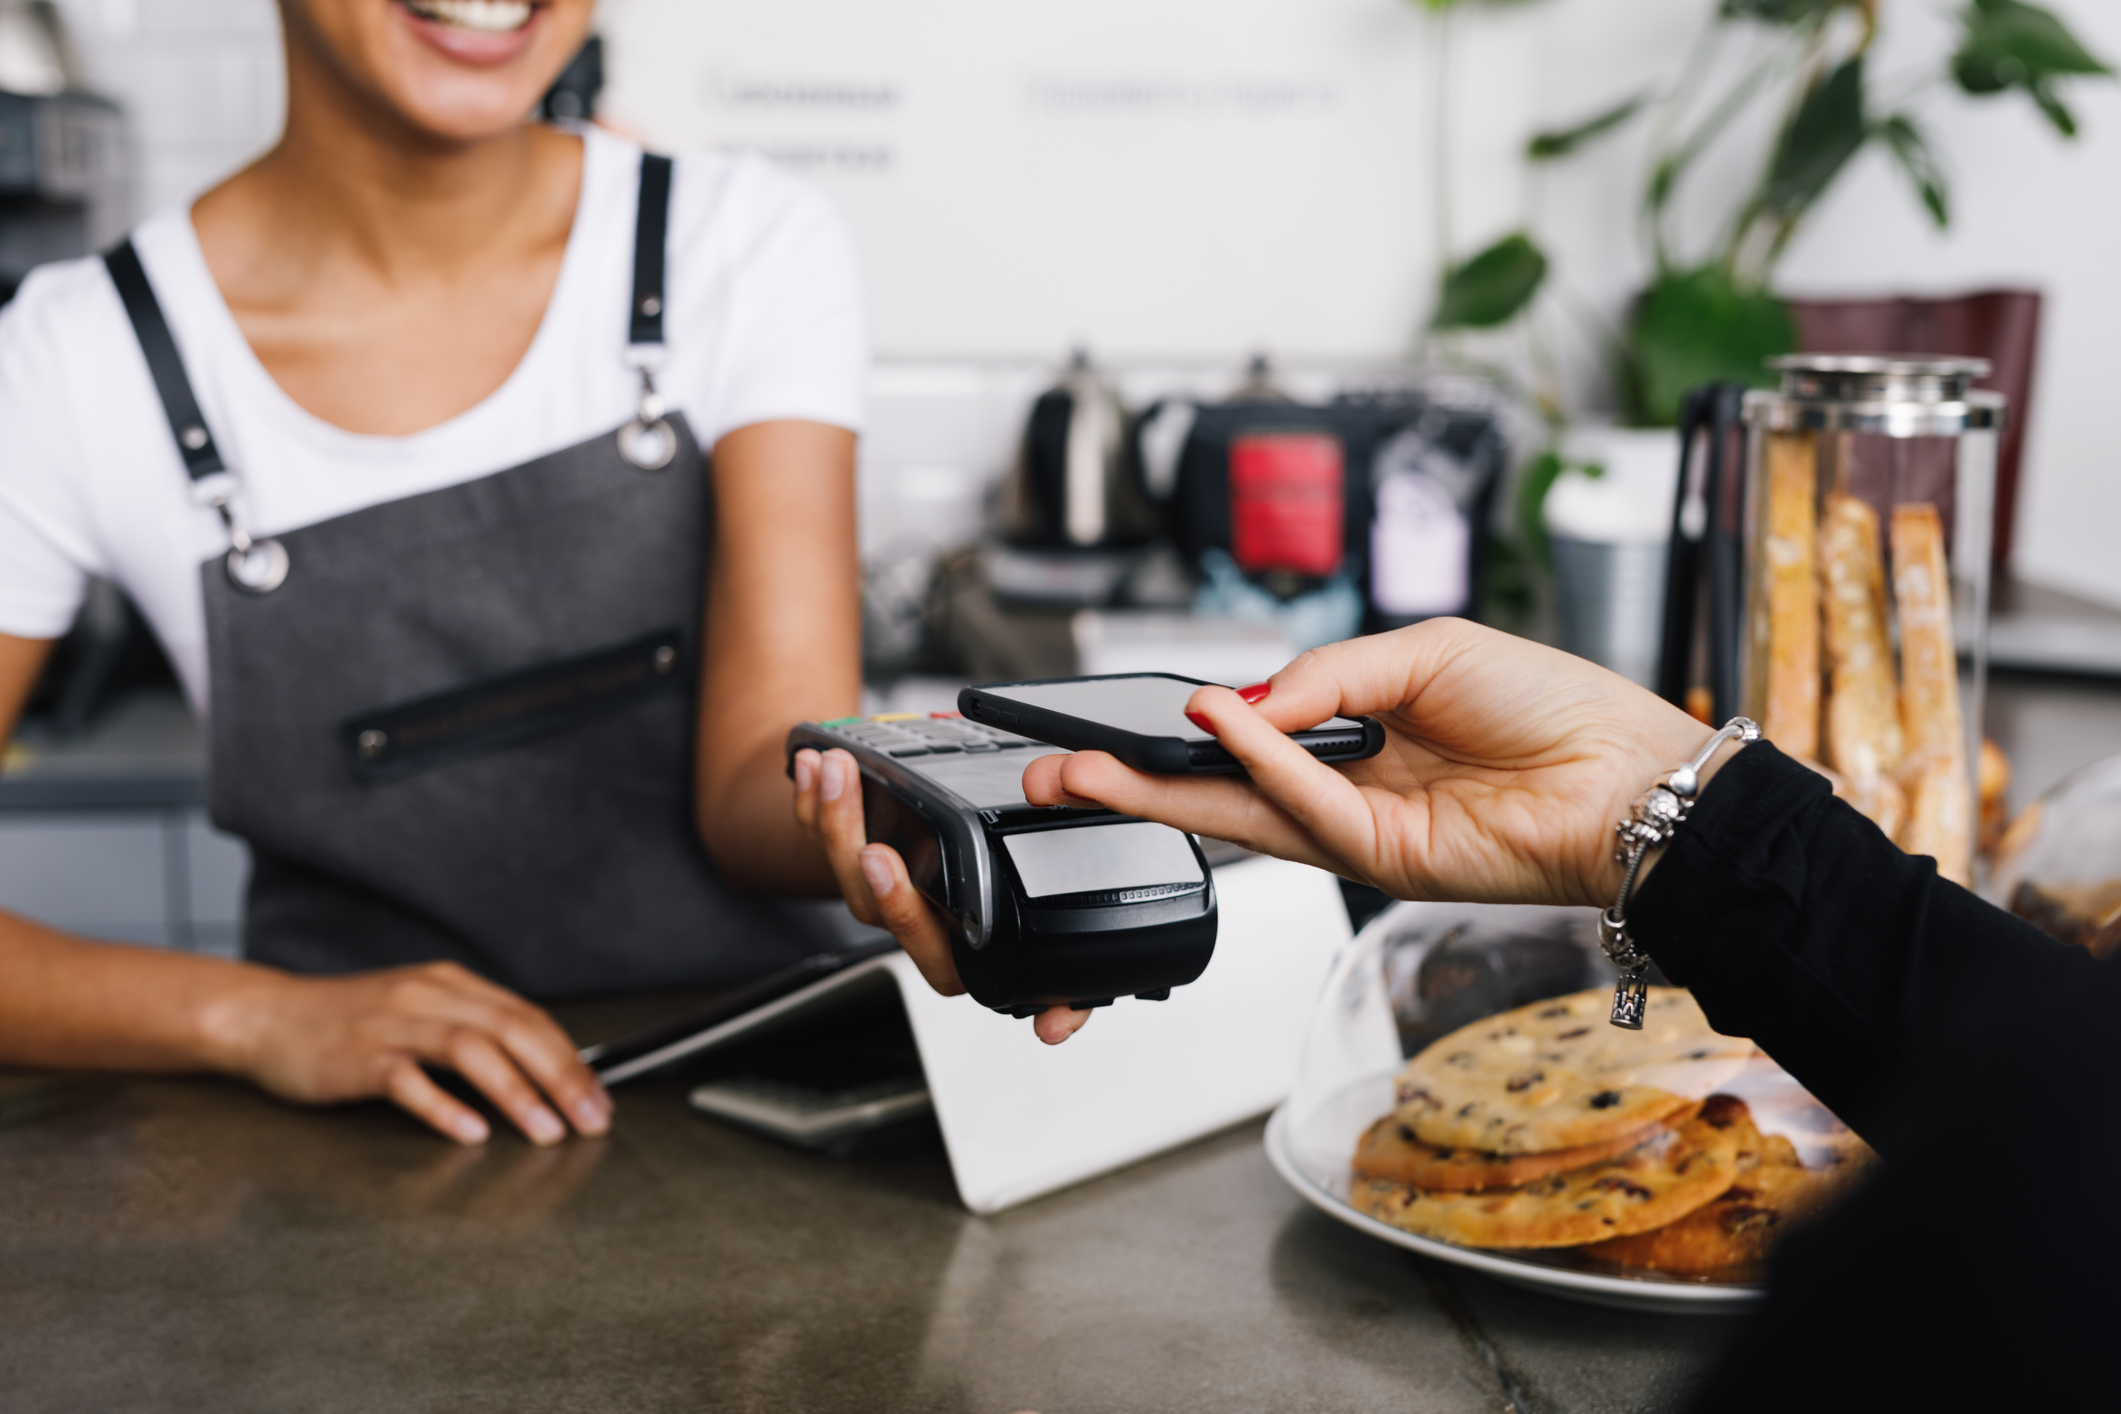 Customer using mobile phone for contactless payment at a cafe